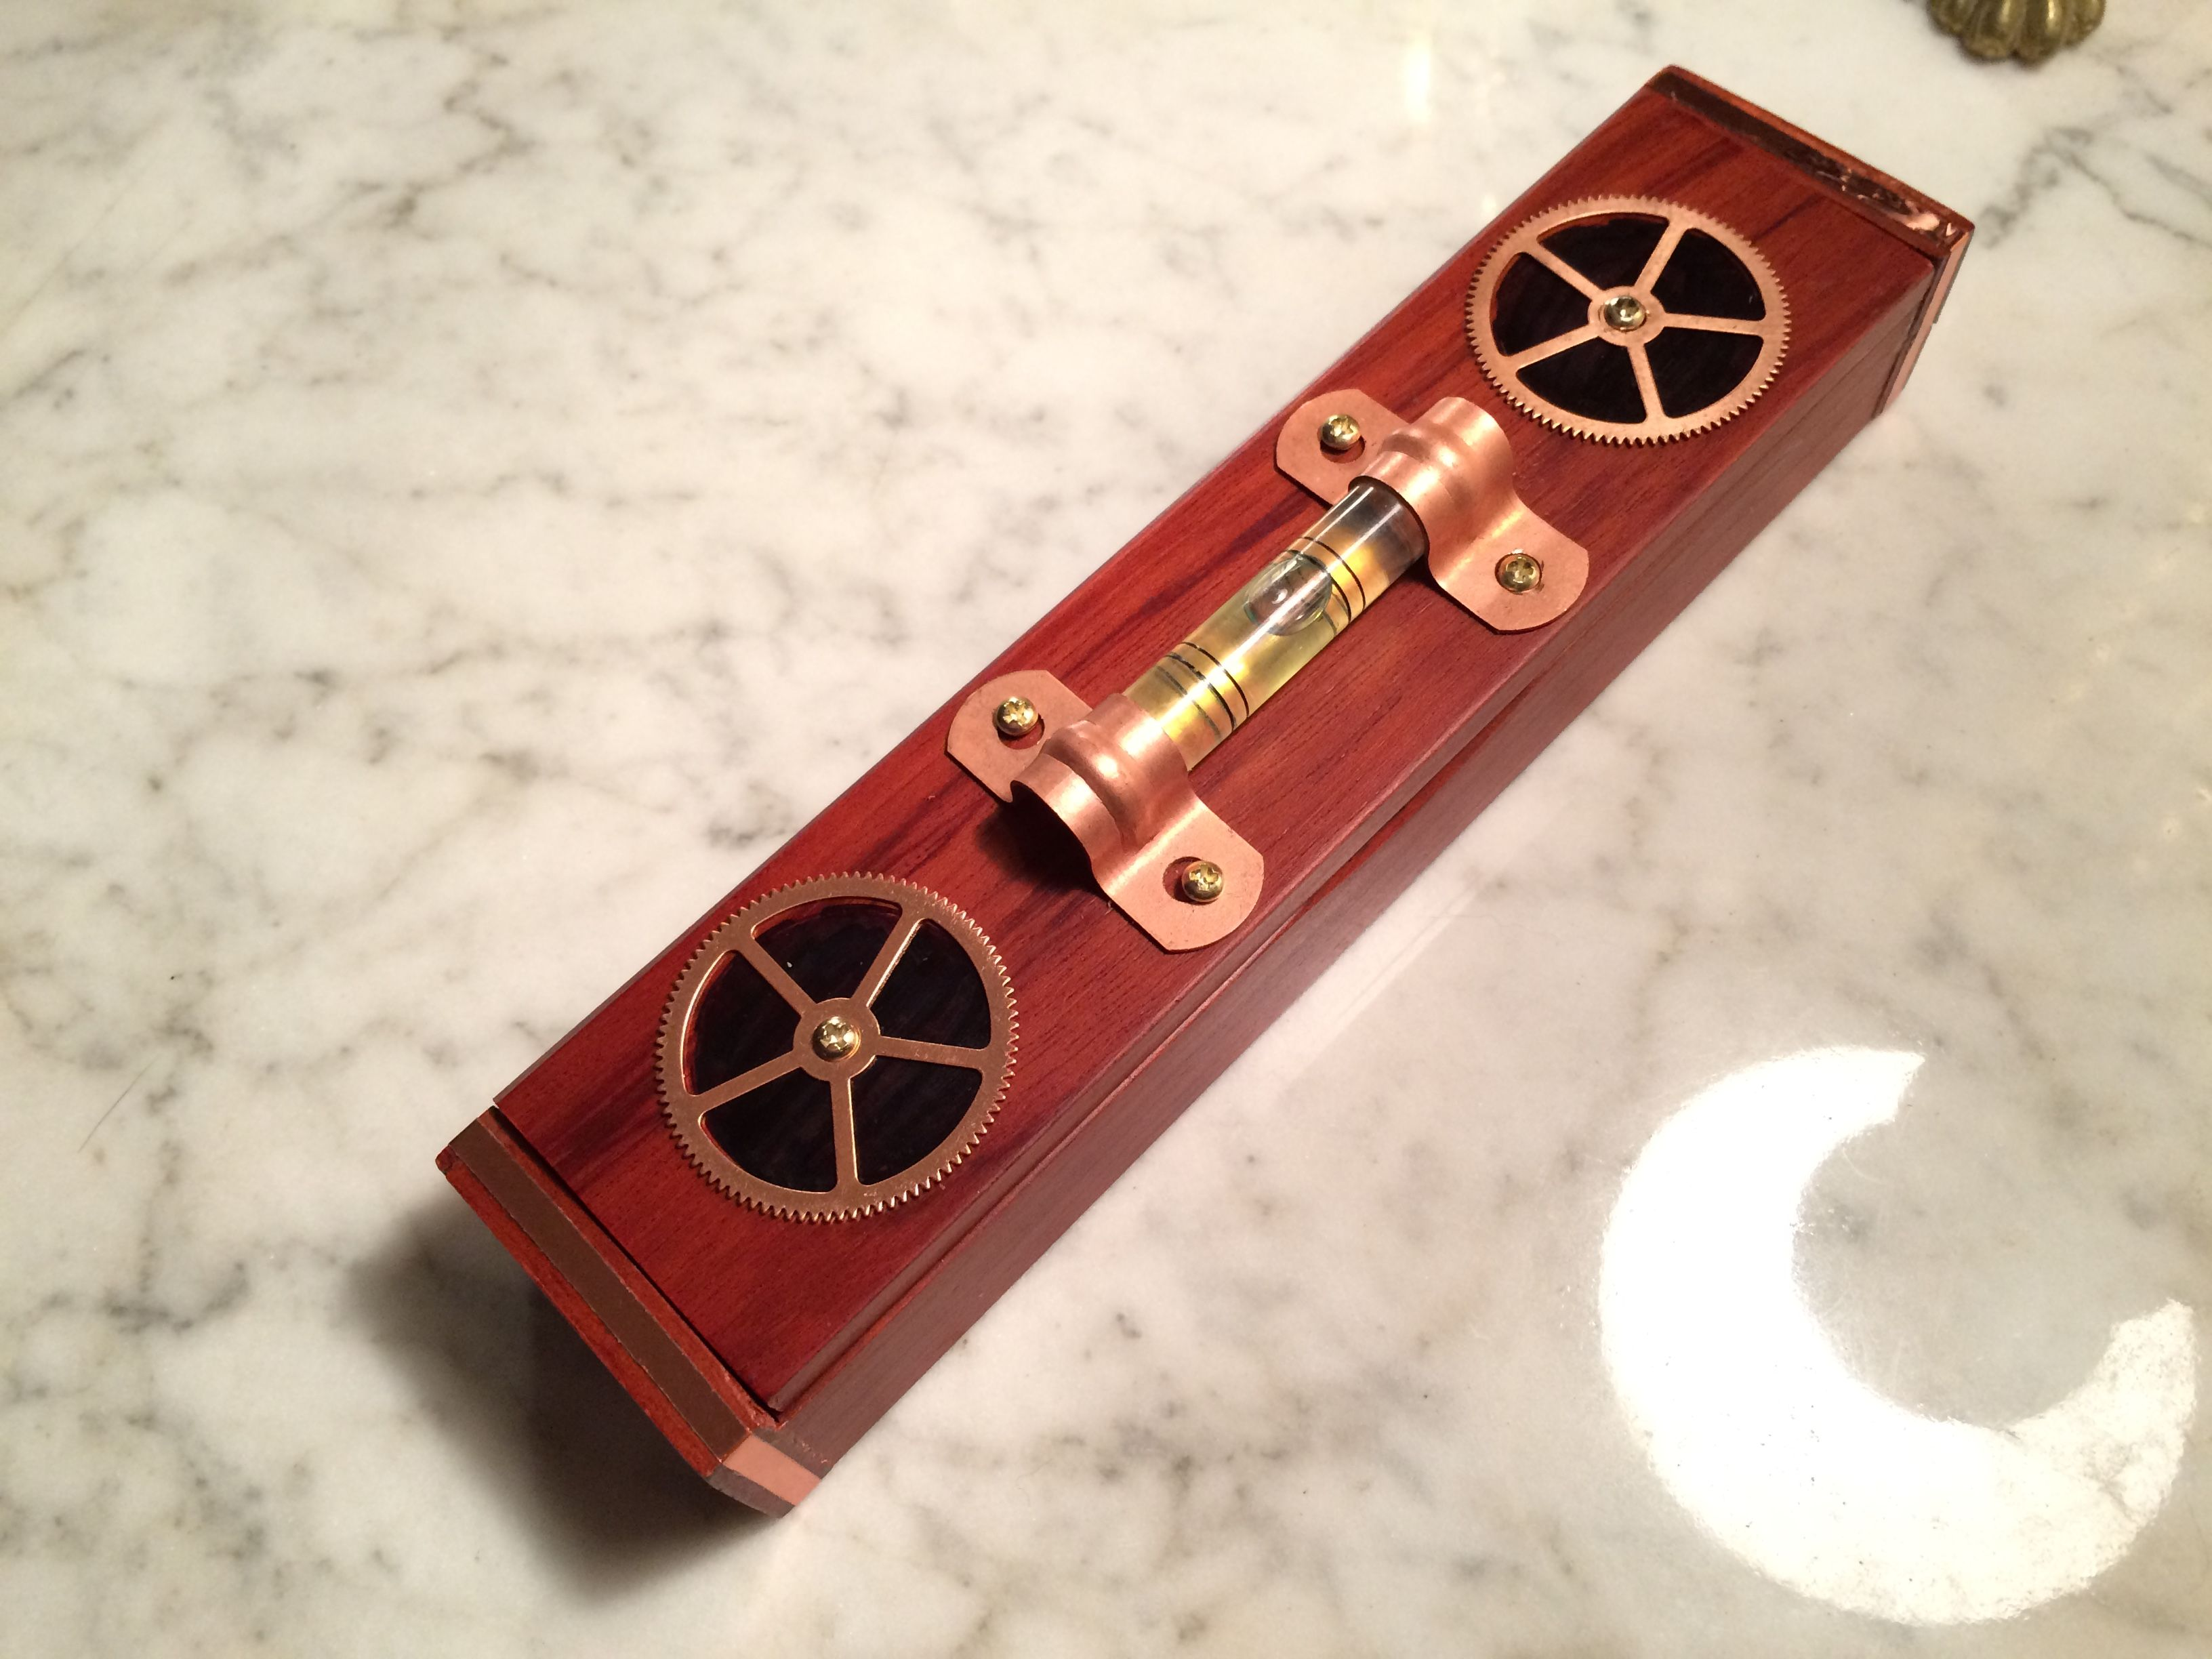 """iGearz Steampunk Pen Box - Copper Level - Here's a nice accessory for your desk, it's an iGearz Steampunk Pen Box. A handsome wood box with a working bubble level and two copper gears on the hinged lid with copper accents. Perfect for storing your favorite pen or pencil, holding paperclips, whatever you want to keep safe and at hand. Use it at your home office, at work, anywhere. (Box is a repurposed """"Tourneau"""" box and that name is now inside the lid.)"""